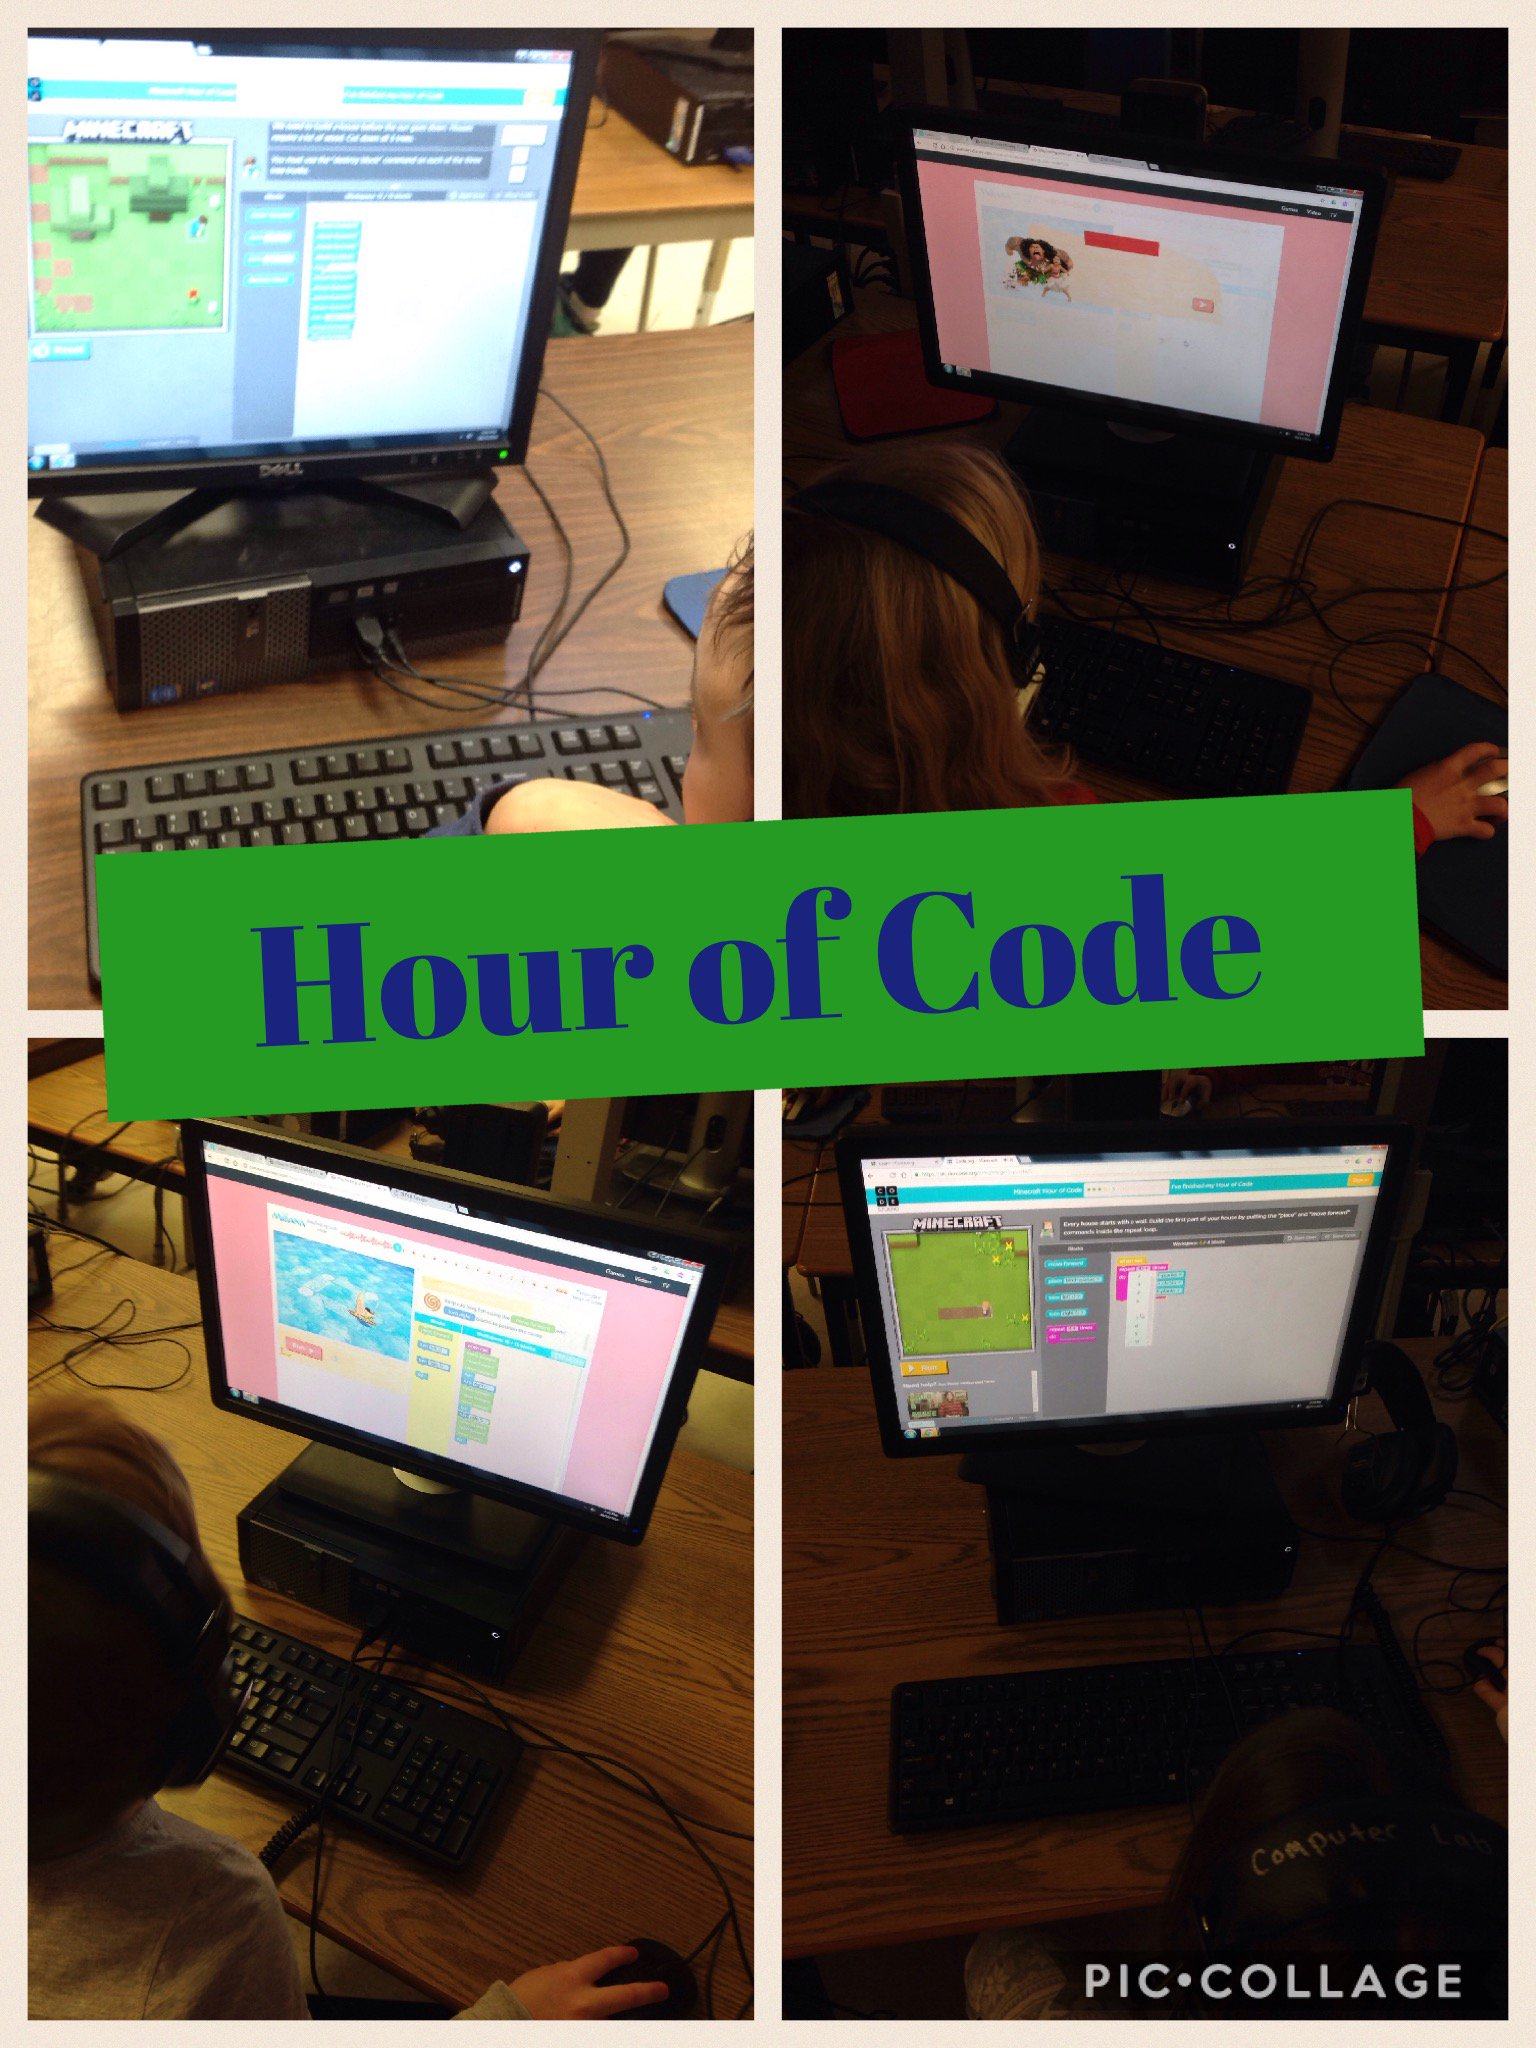 Grade 1/2 Ss participating in #HourofCode #TLDSBcode @tldsb #tldsblearns #minecraft and #Moana were favs! https://t.co/bgJxp9z5jf